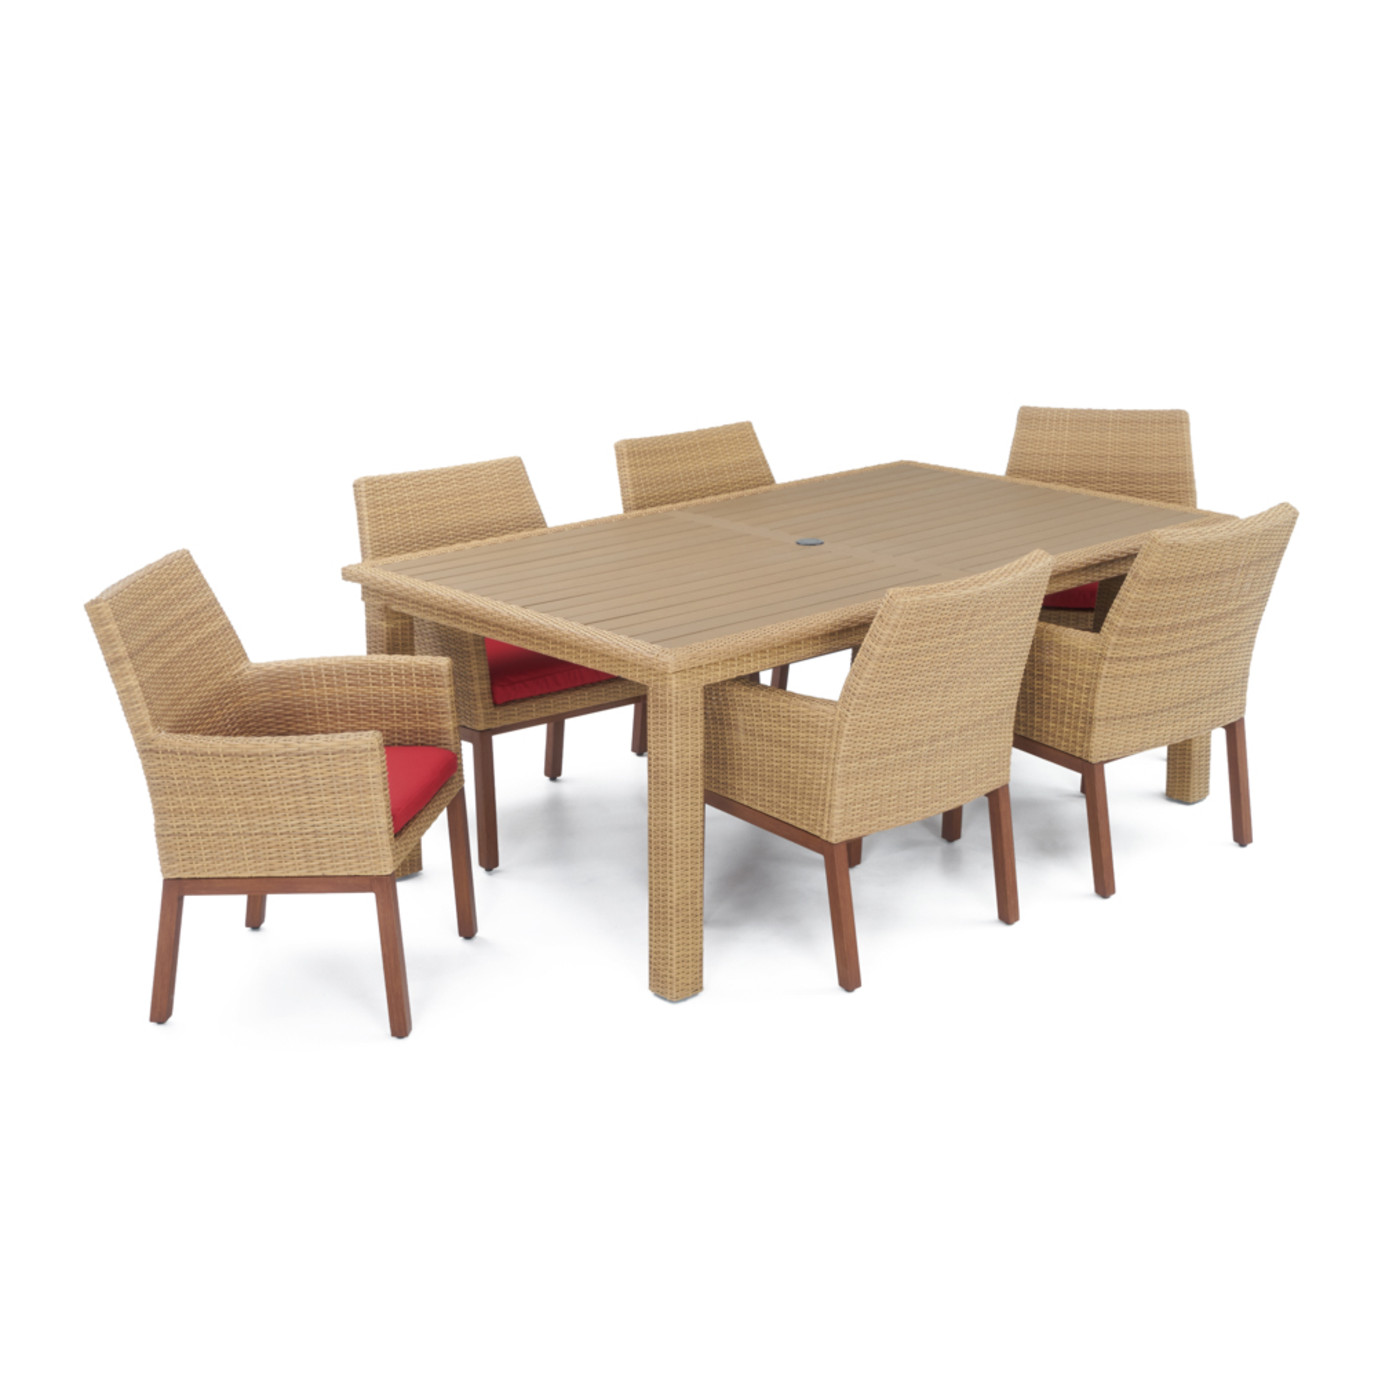 Milea™ 7pc Dining Set - Sunset Red